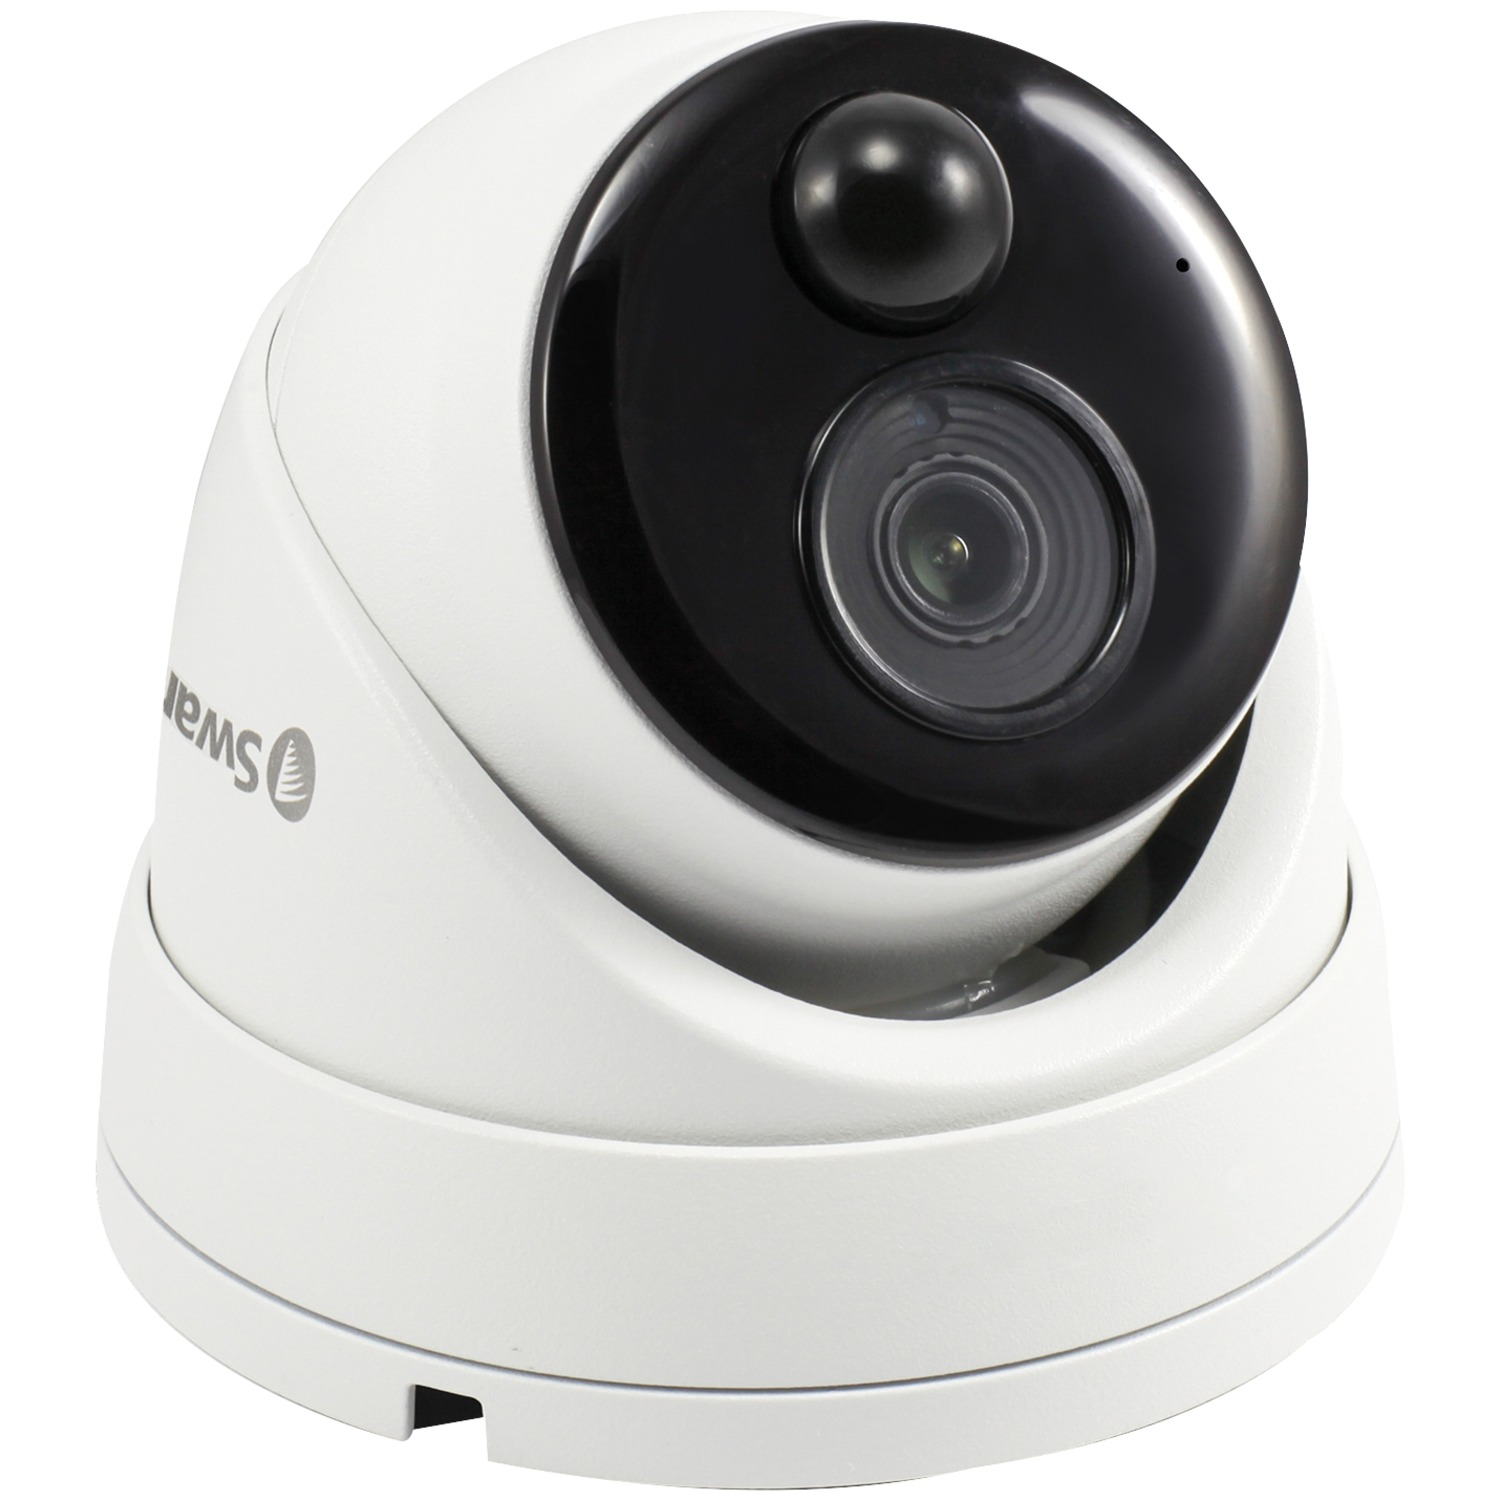 Swann SWNHD-866MSD-US 5.0-Megapixel IP True Detect Camera with Audio (Dome)